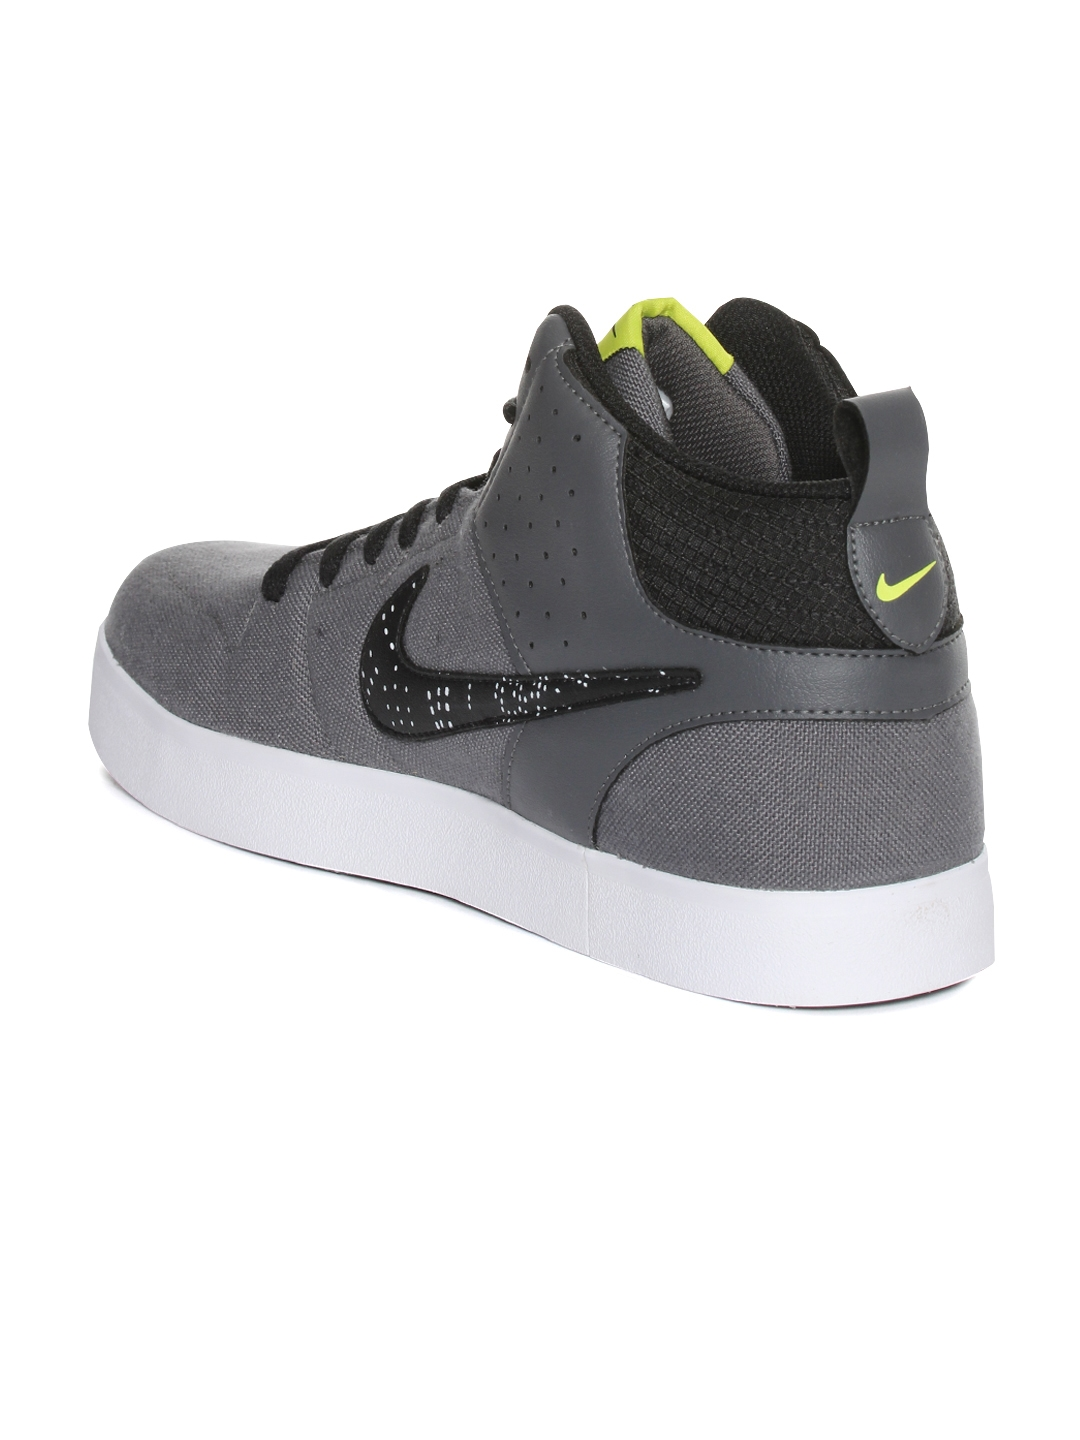 quality design aaec6 6d67f Nike Men Grey Liteforce III MID Solid Mid-Top Sneakers